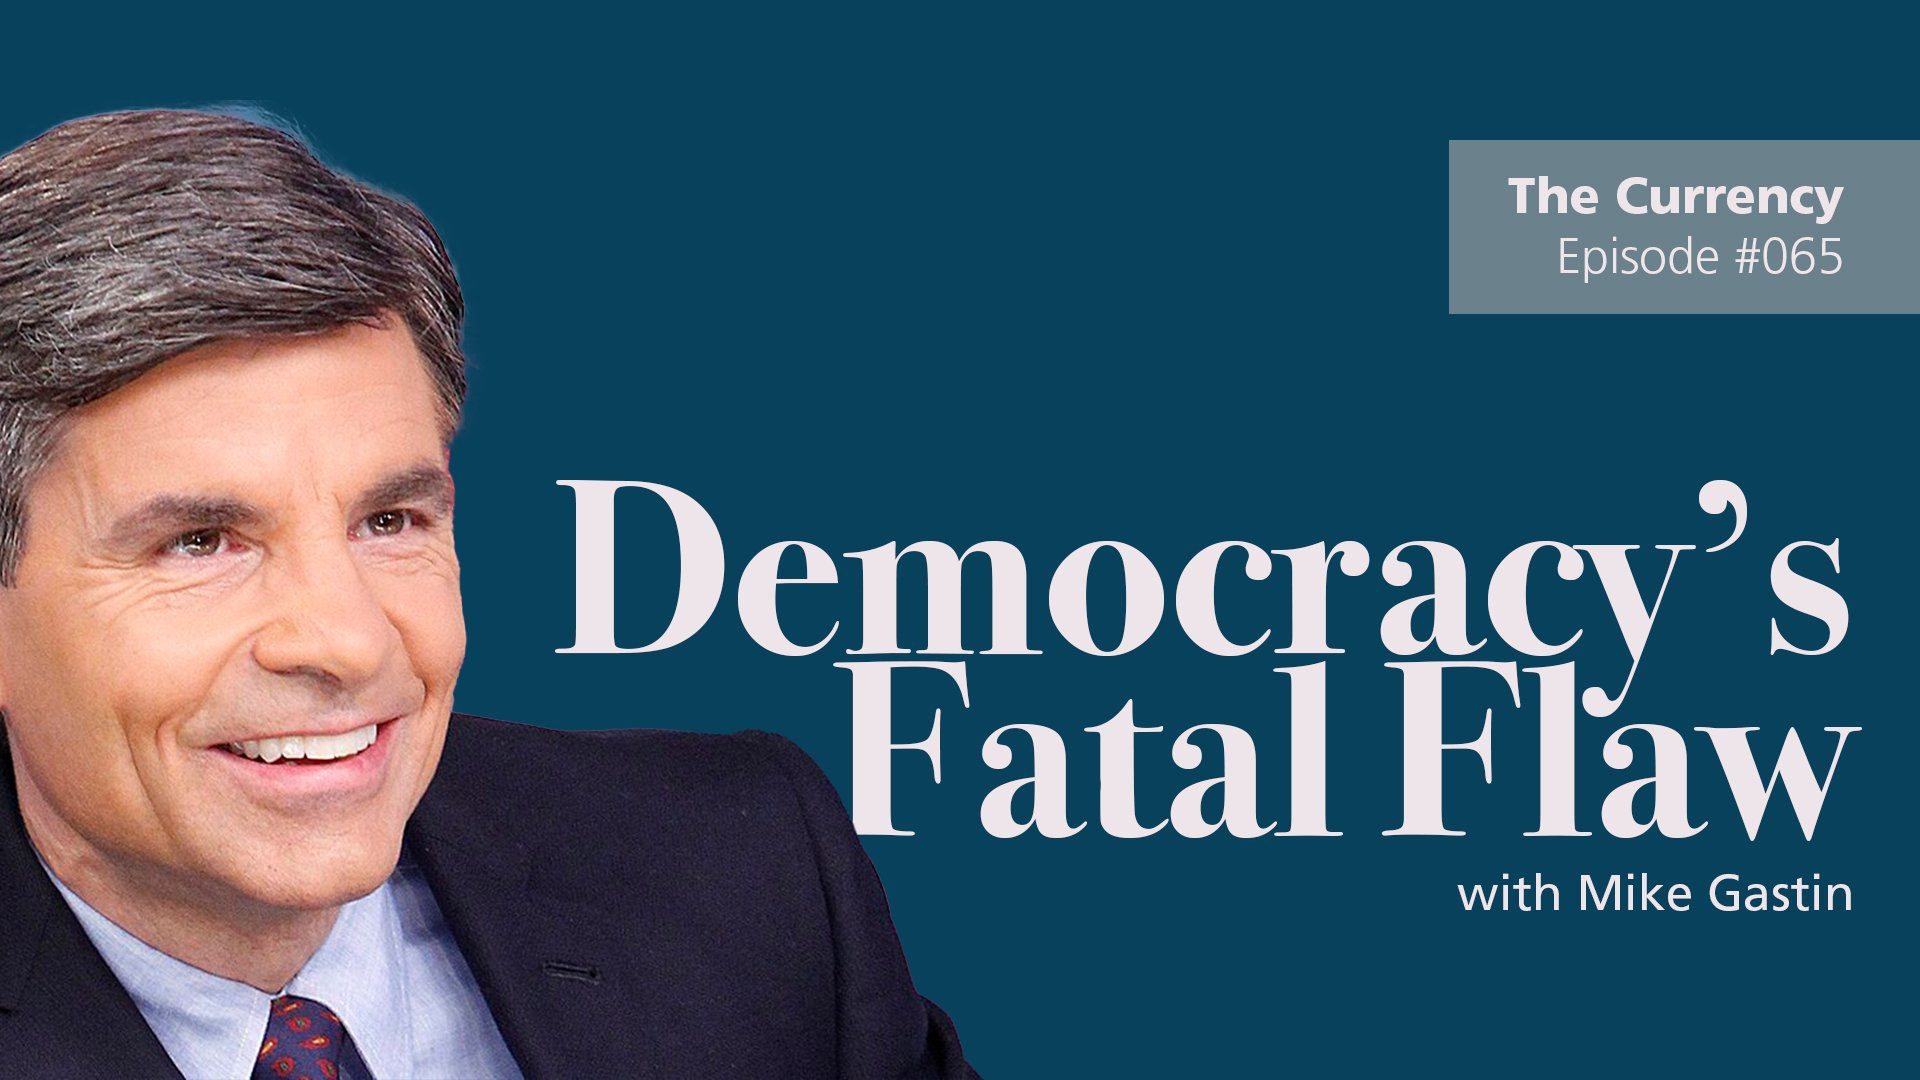 democracy's fatal flaw on the currency podcast